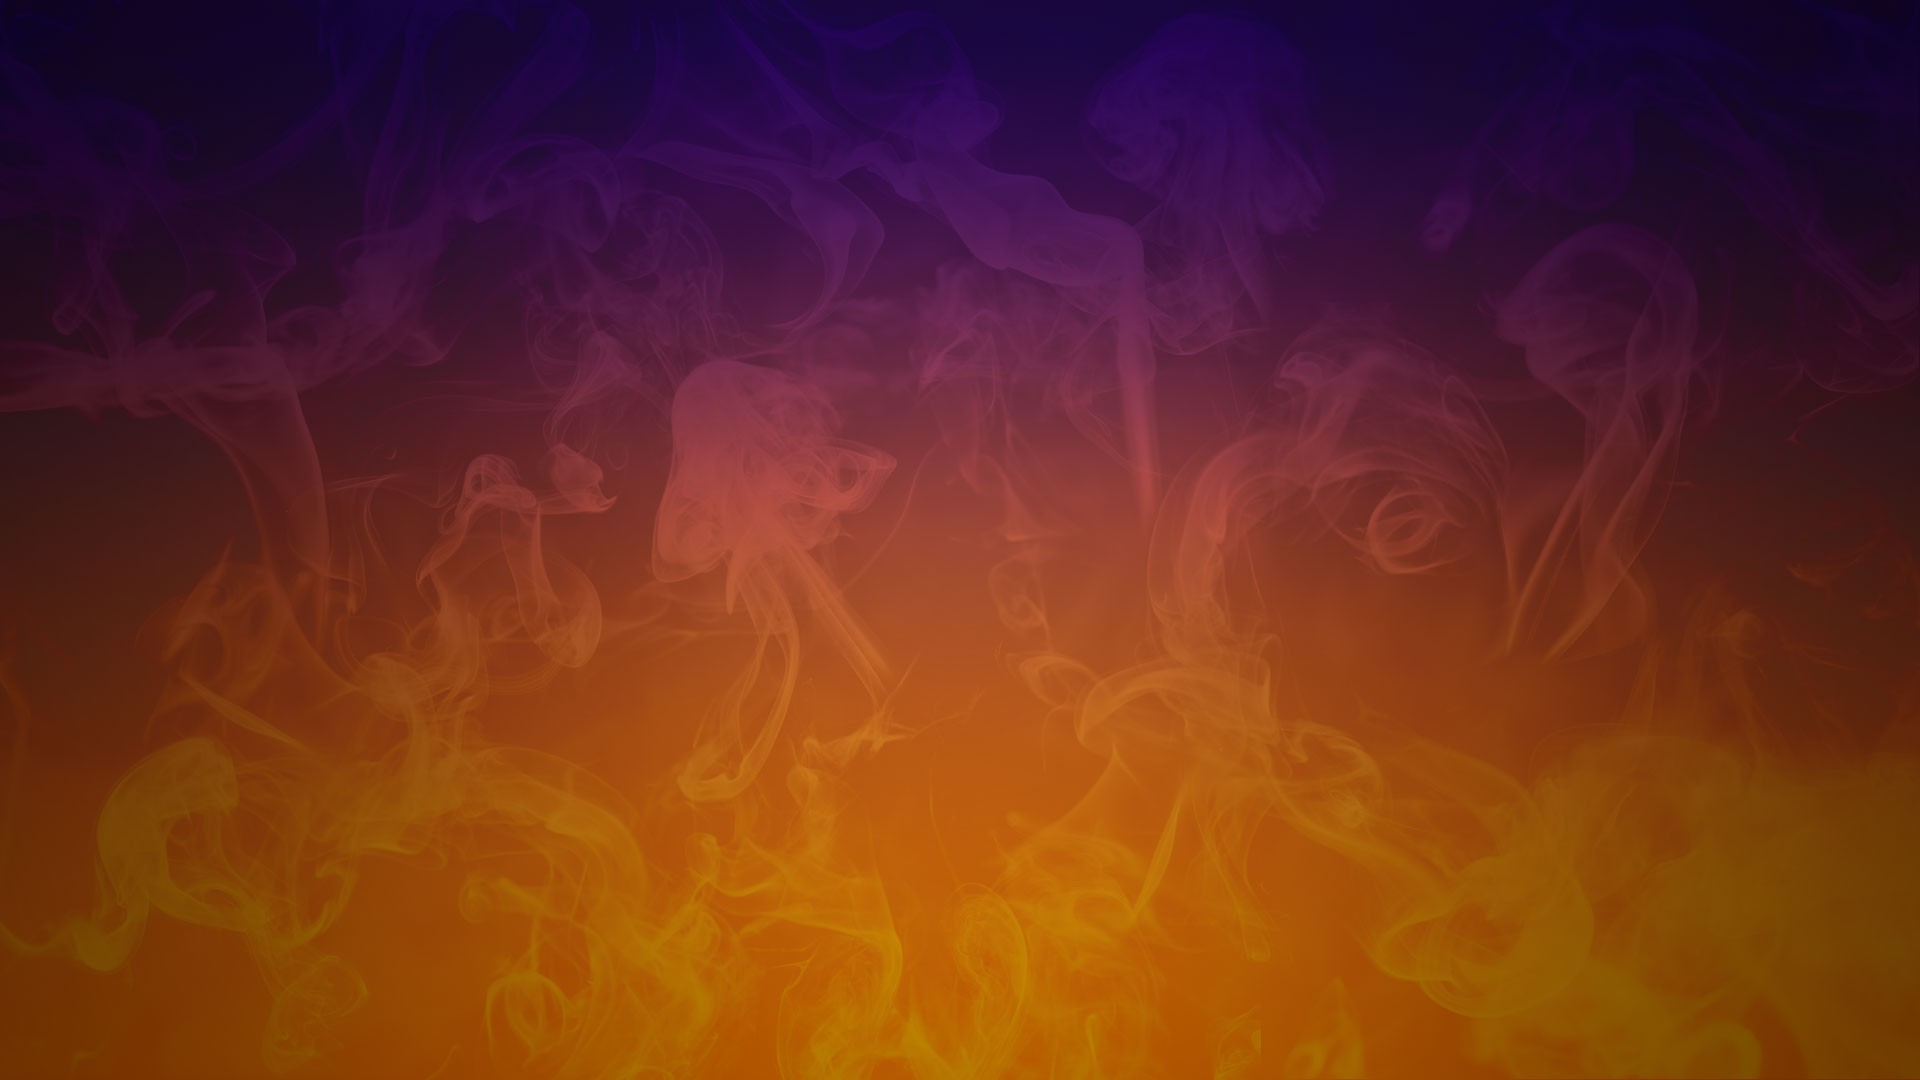 download 1920x1080 wallpaper gradient smoke abstract full hd